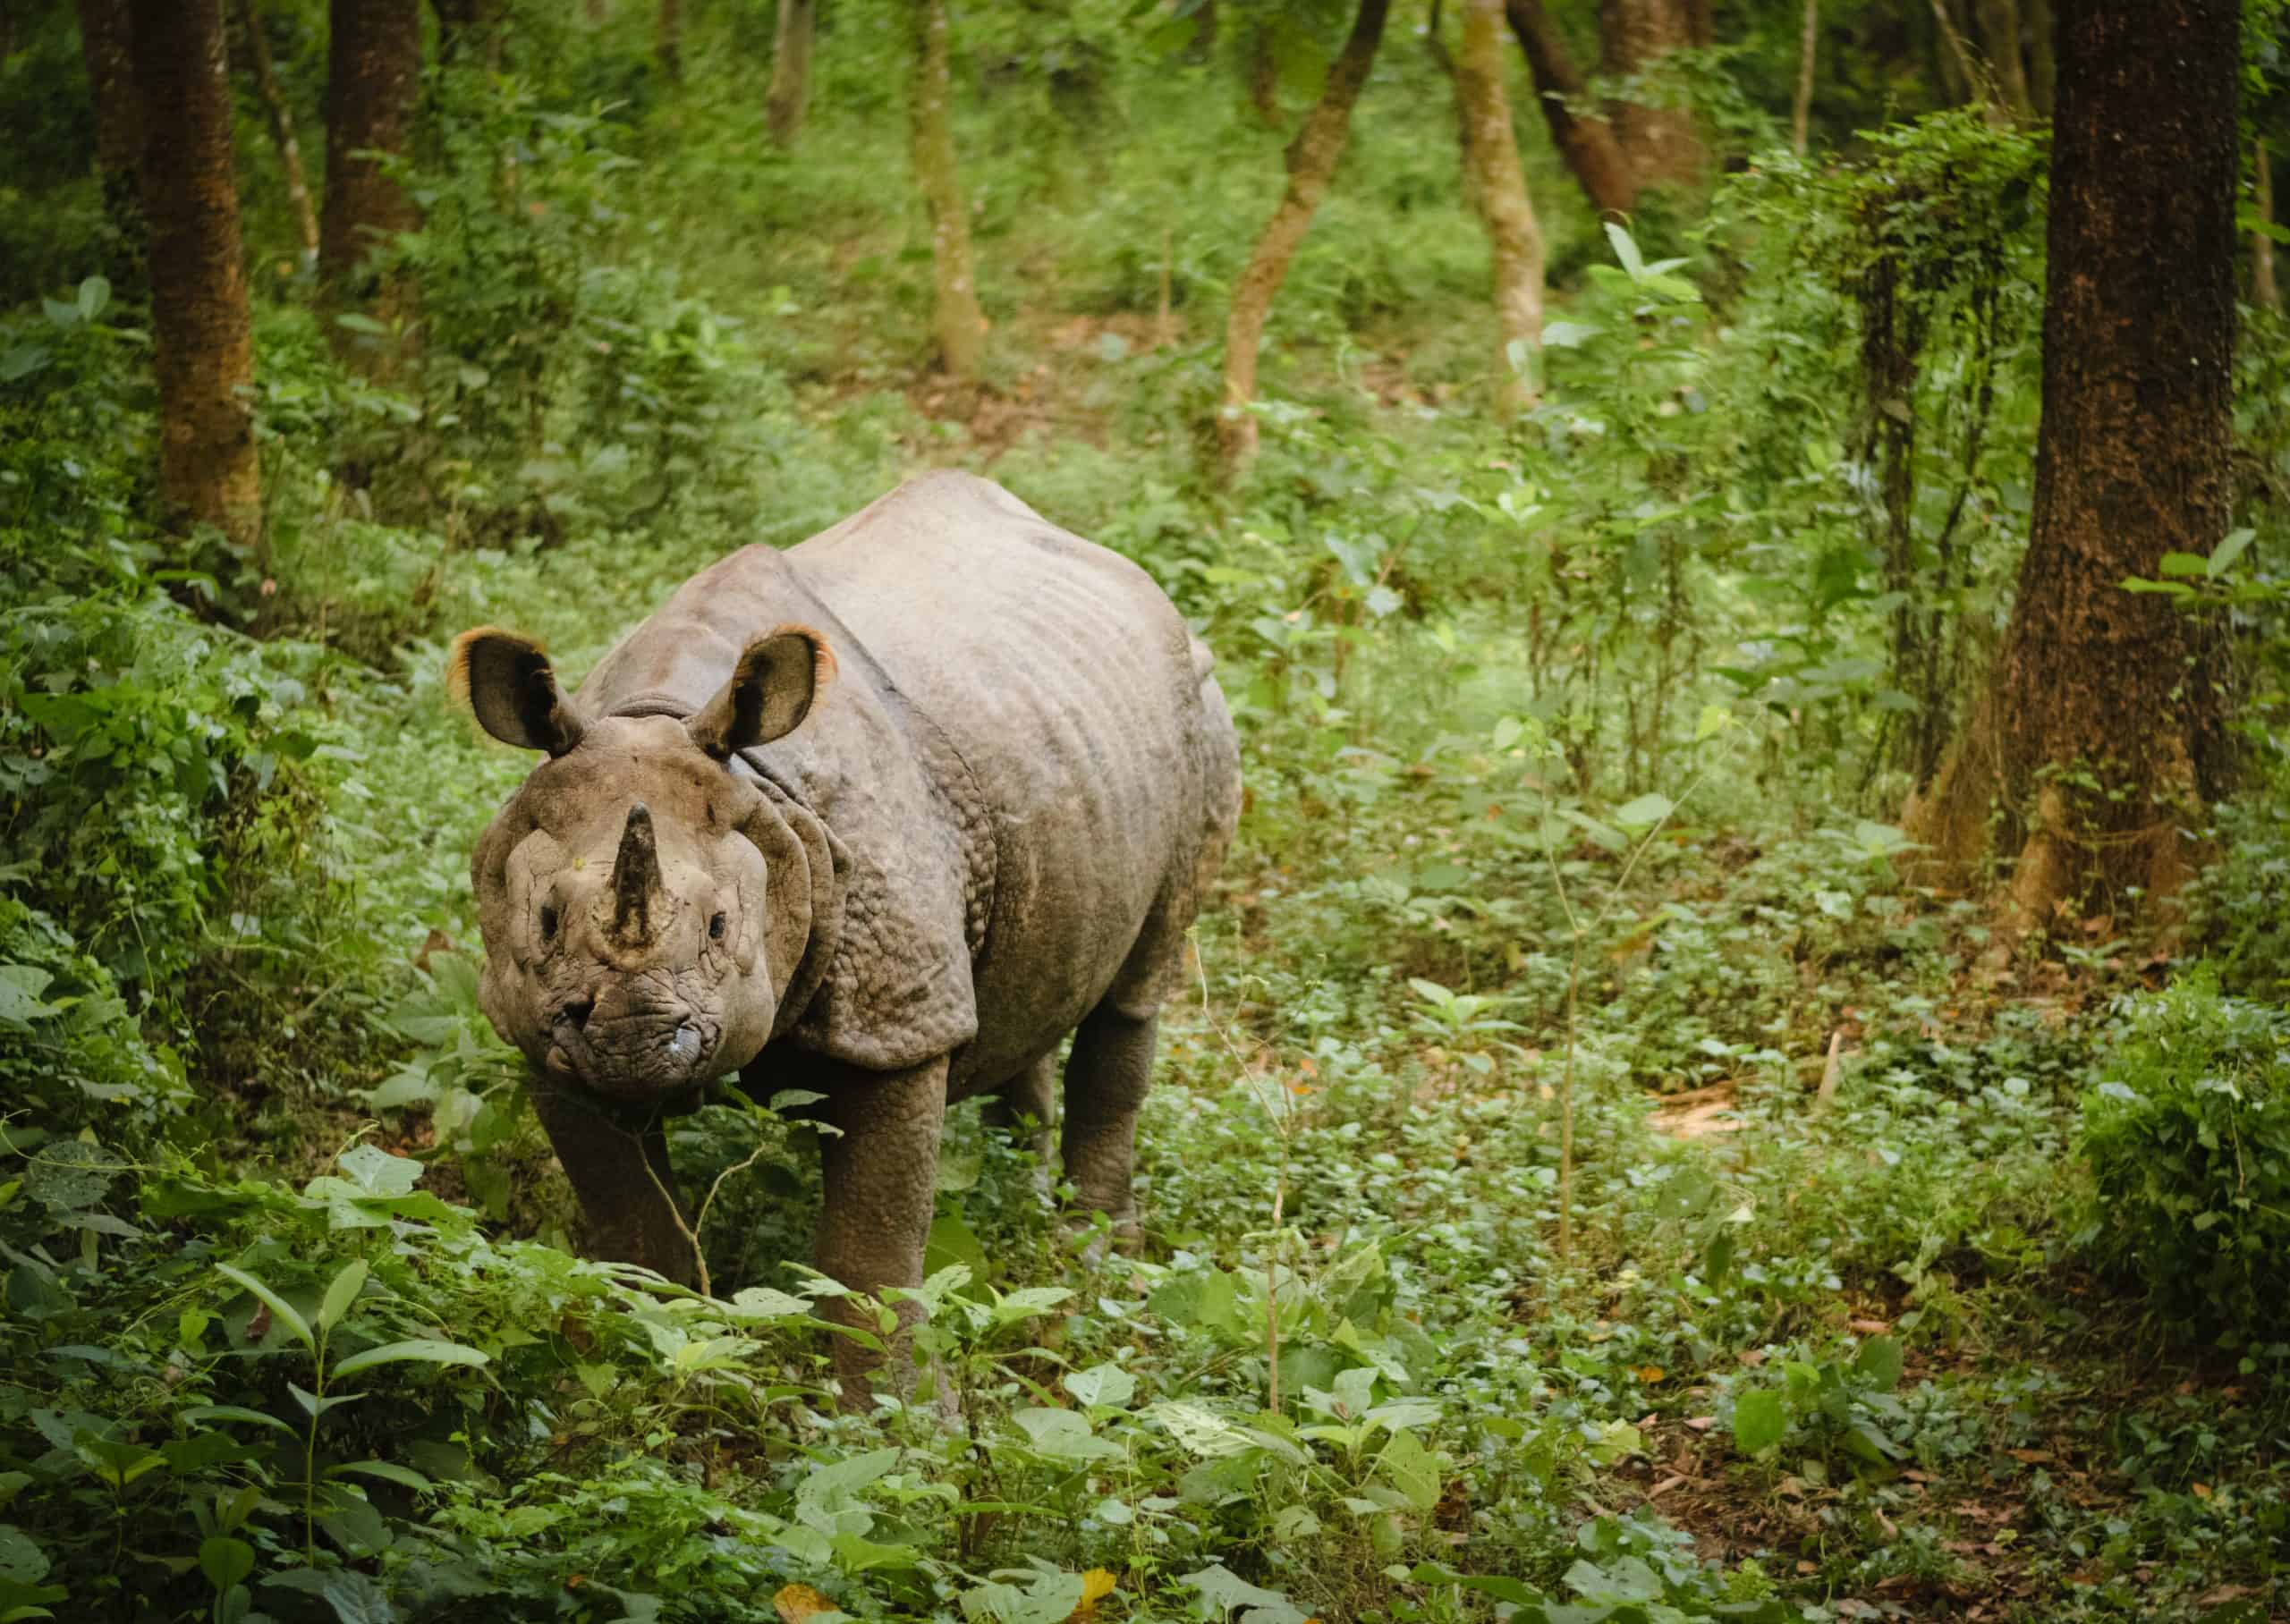 Isolated Indian One Horned Rhinoceros In Chitwan National Park Nepal.